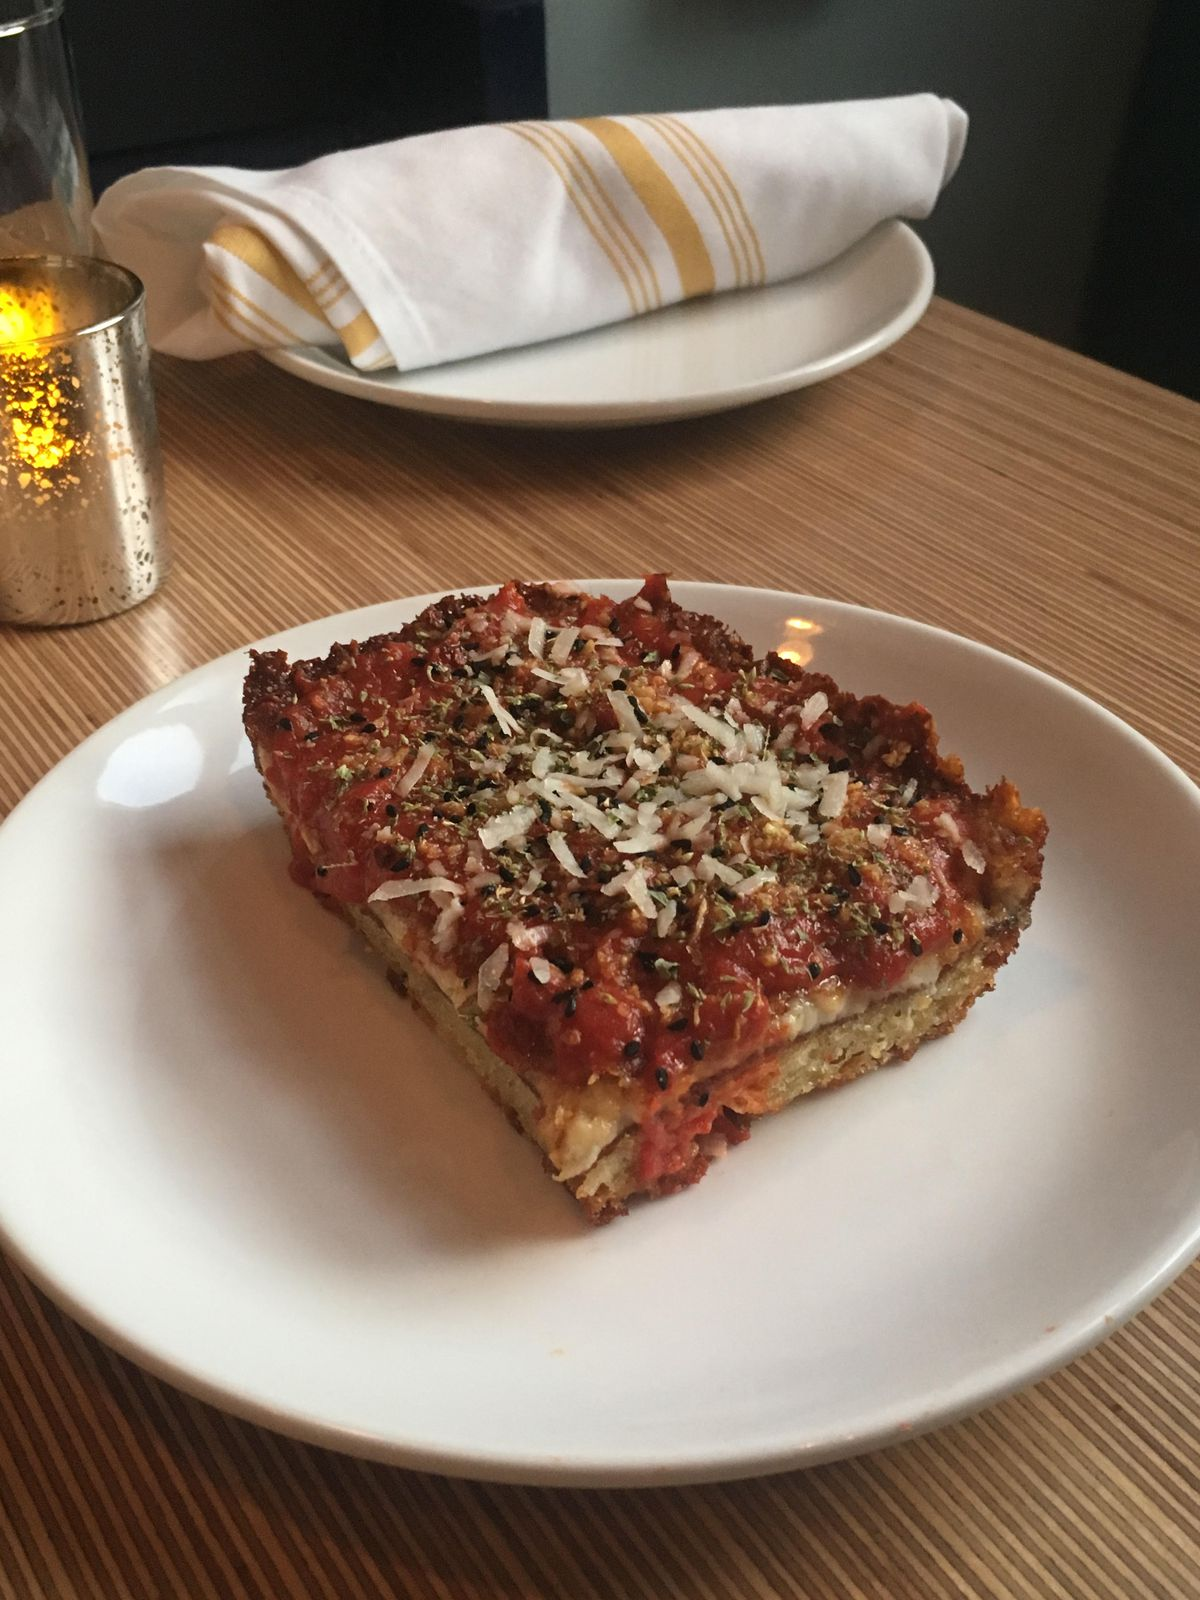 Detroit-style pizza at Tapestry